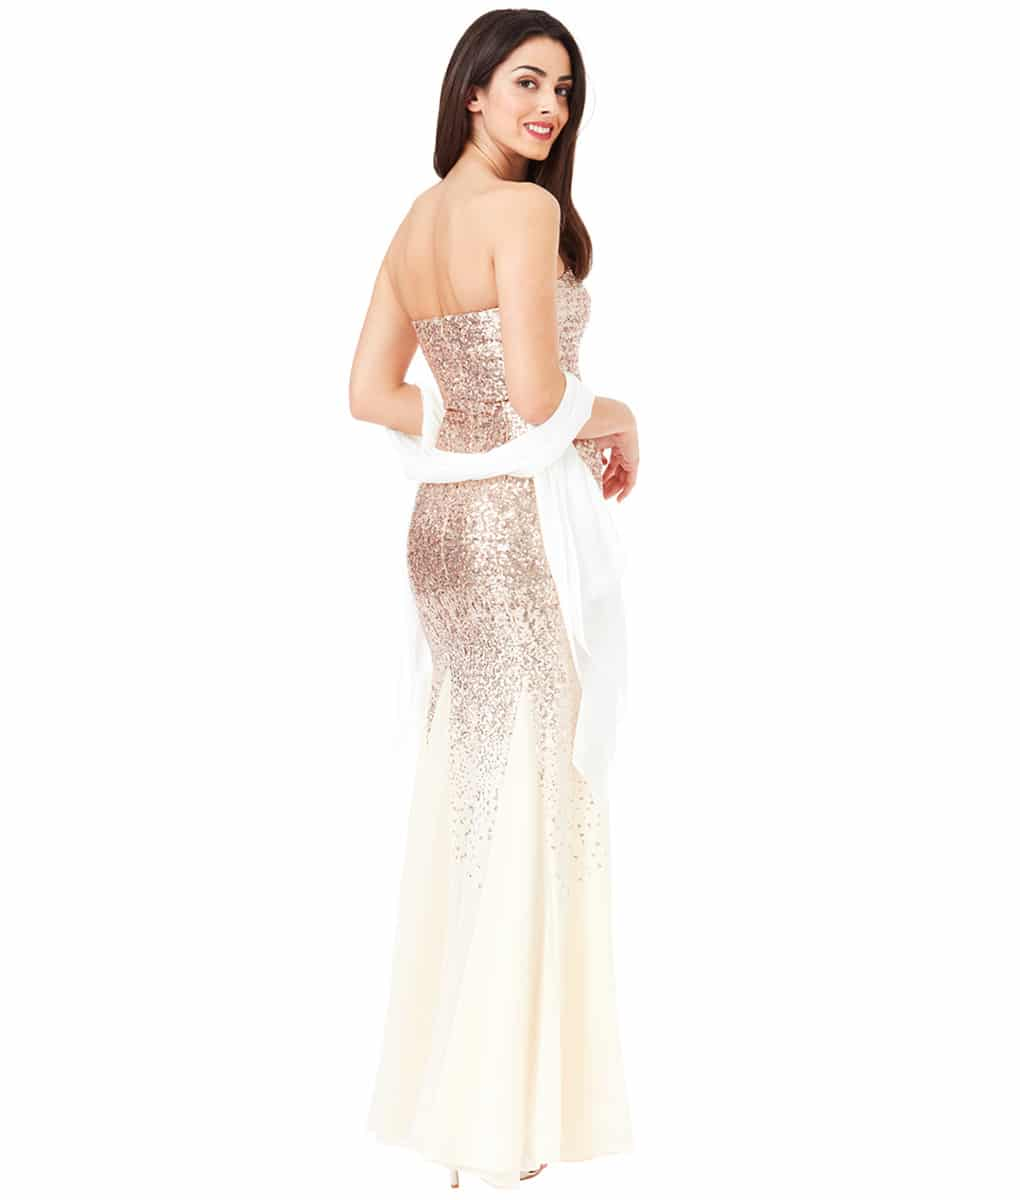 Alila-Strapless-Champagne-Sequin-debs-dress-city-goddess